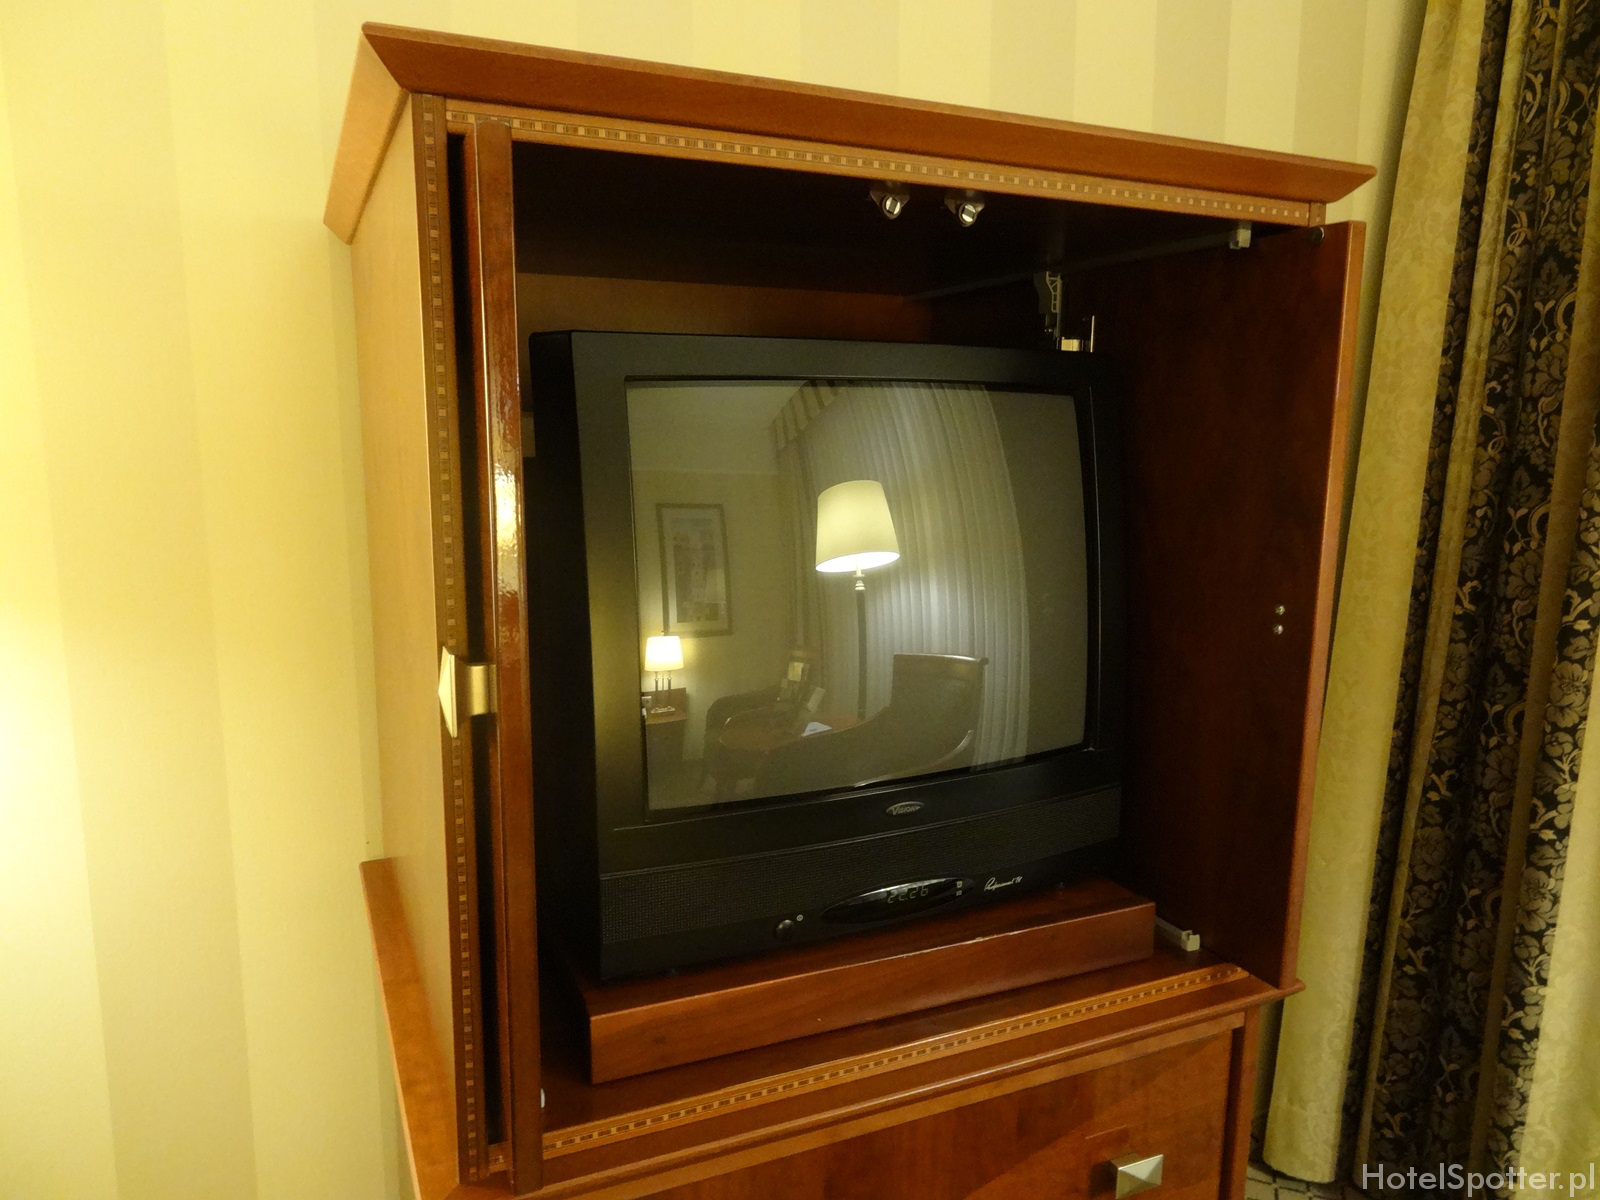 Maritim Hotel Berlin - pokoj Superior room CRT TV